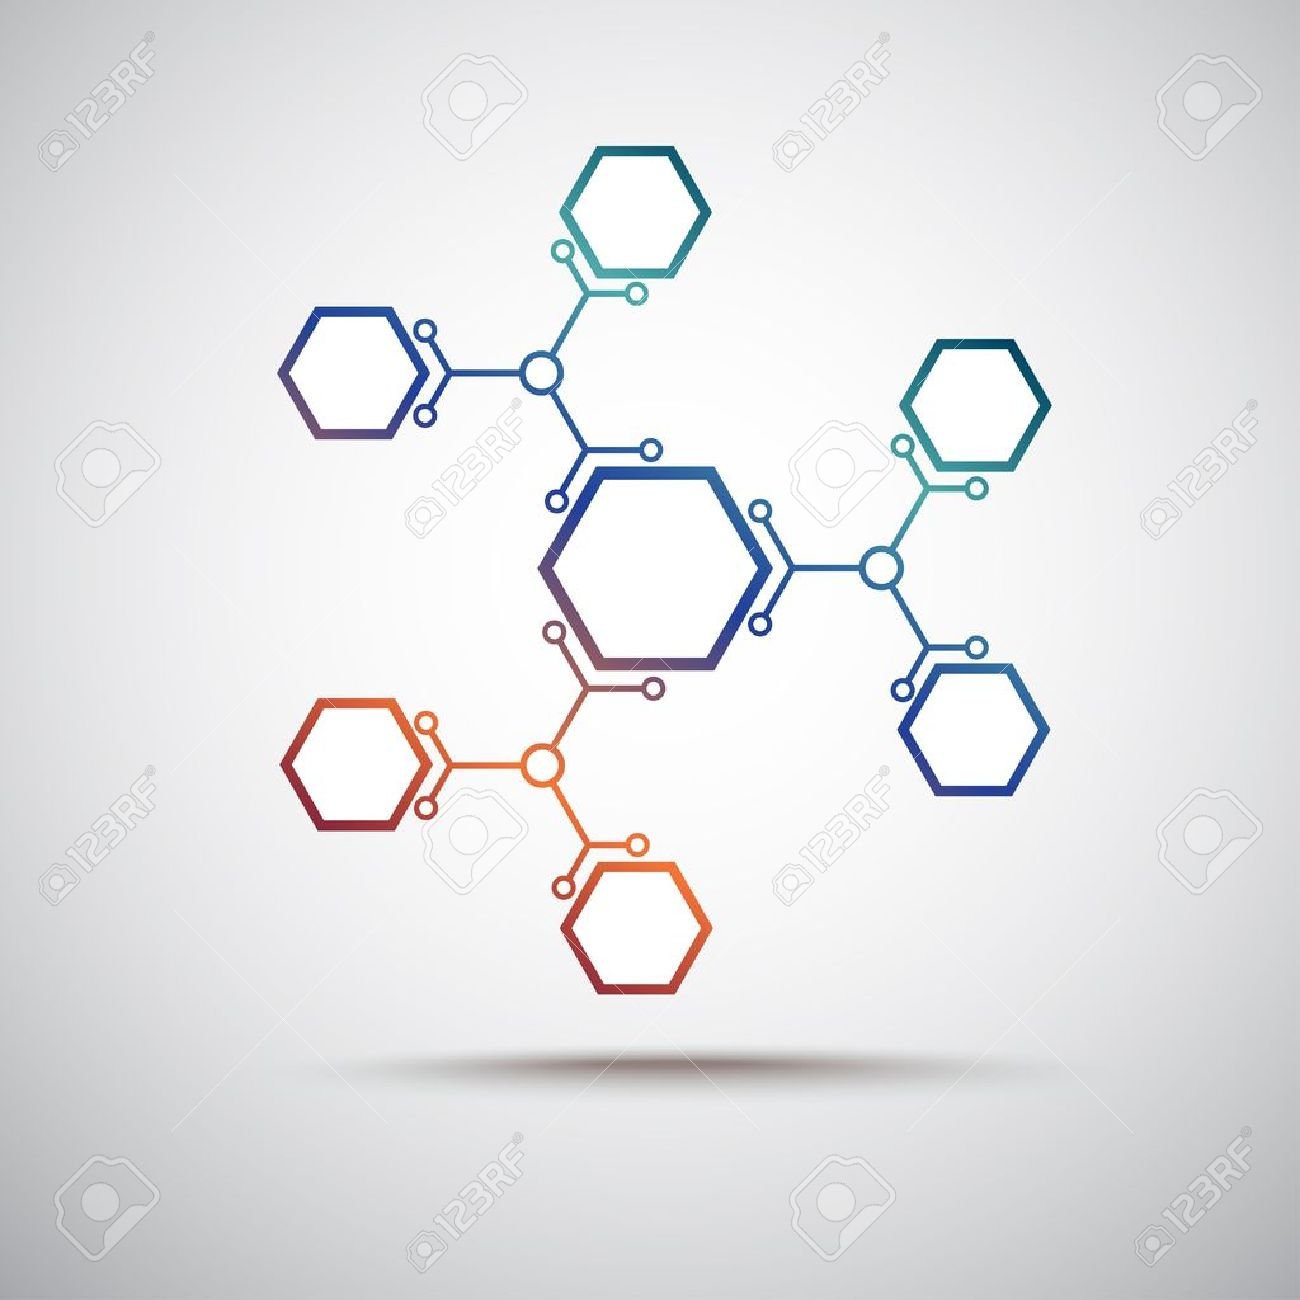 connected by a colored cell  Vector Graphics Stock Vector - 15434849